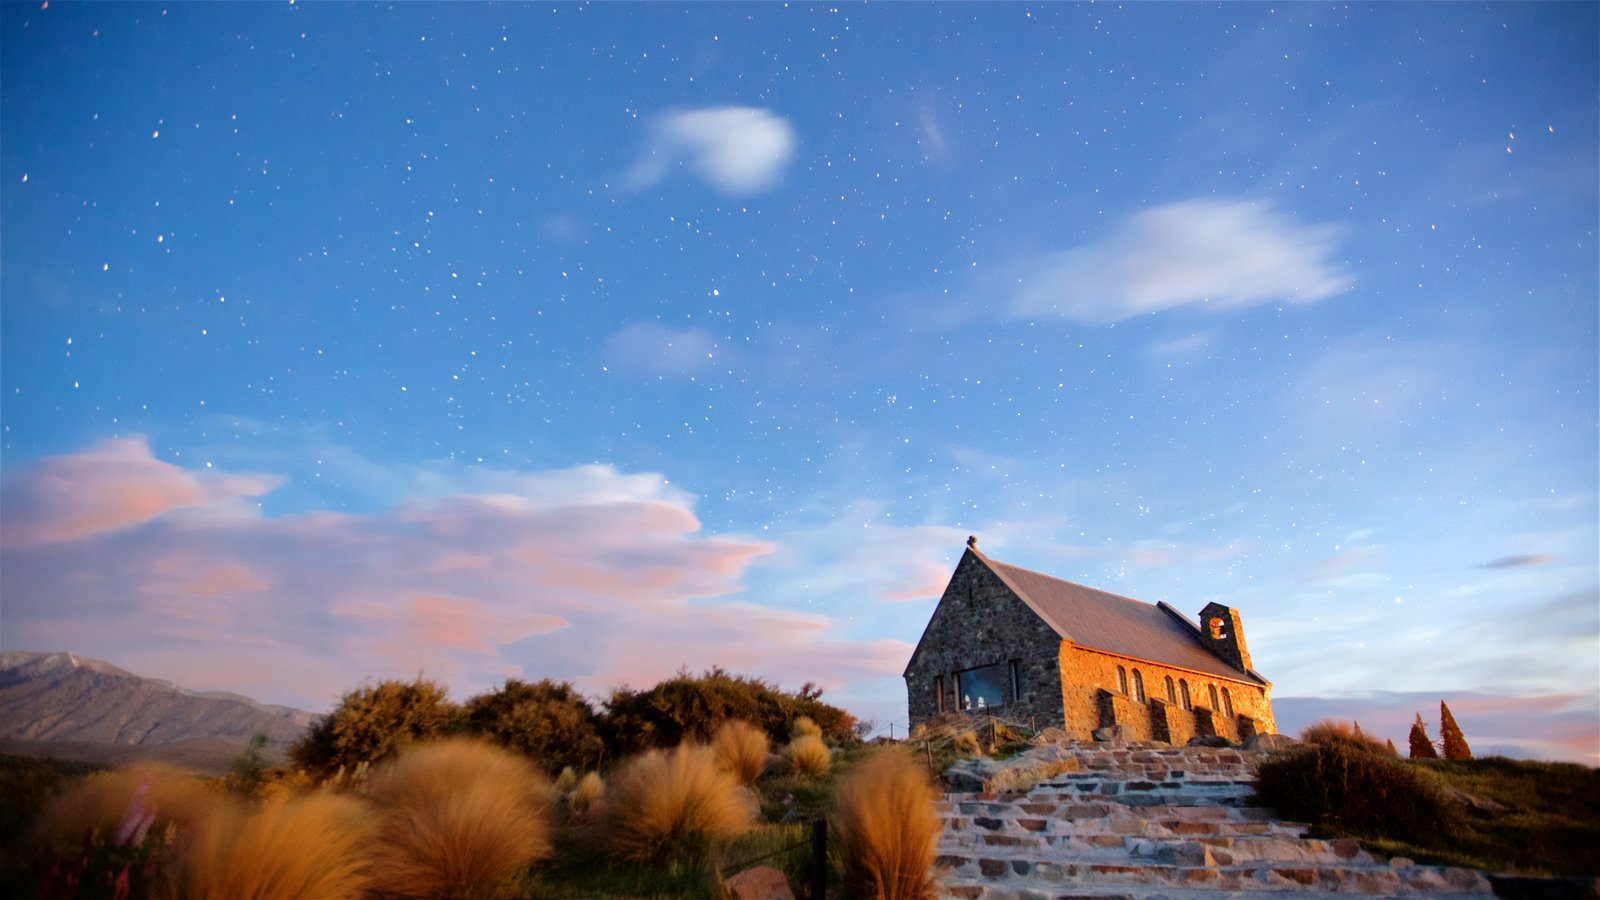 Church of the Good Shepherd featuring a church or cathedral, a sunset and night scenes